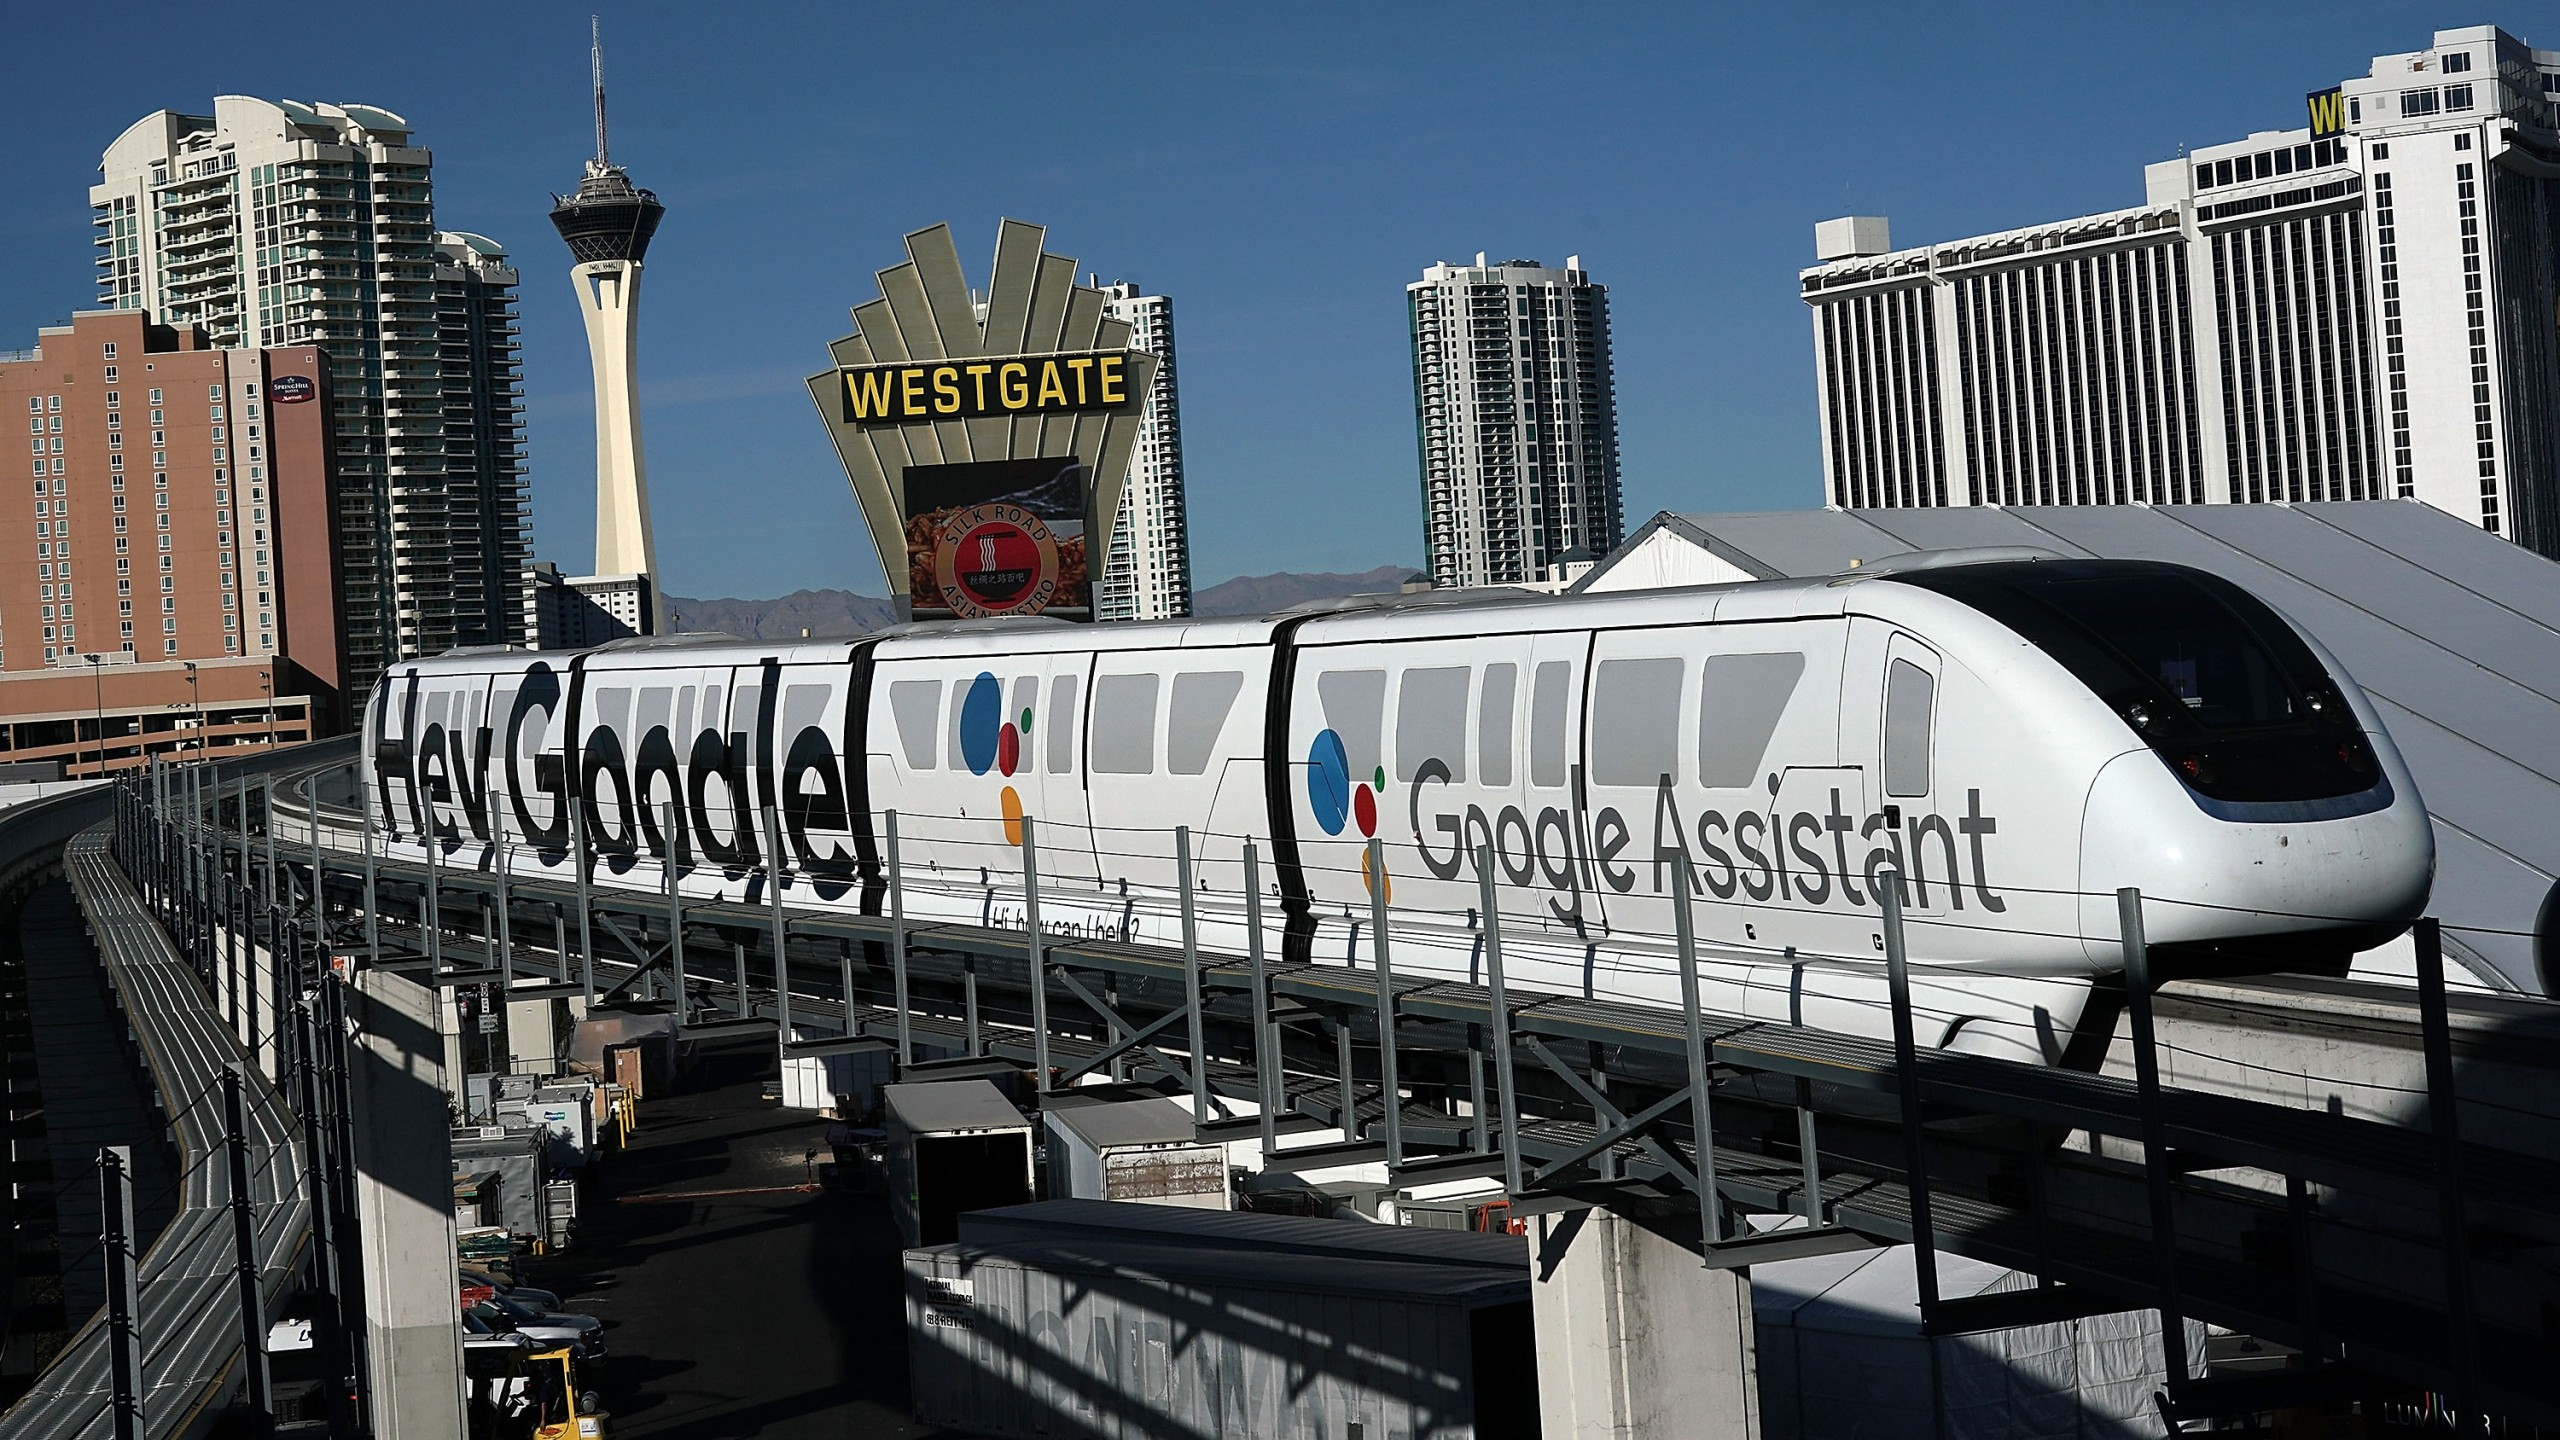 A Las Vegas Monorail car with a Google ad is seen running prior to the CES 2018 on Jan. 7, 2018. (Credit: Alex Wong/Getty Images)